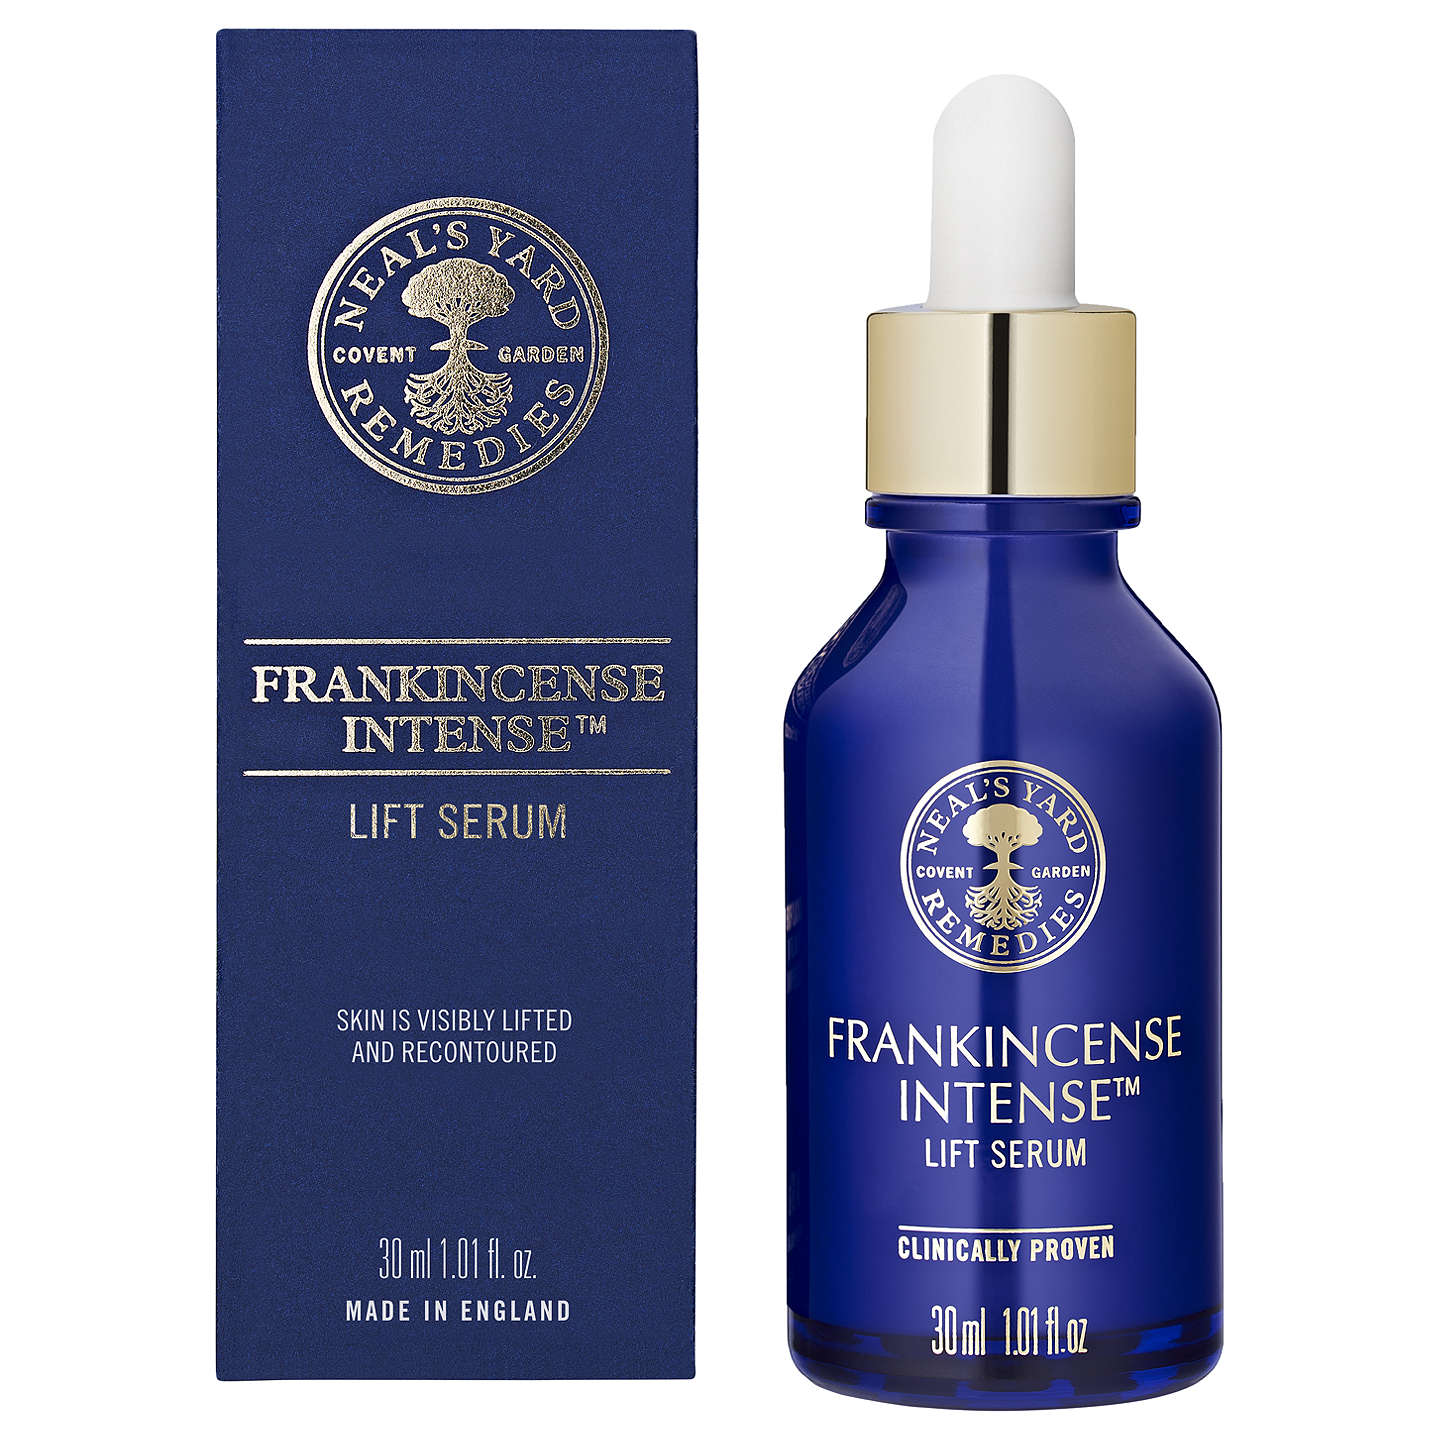 �ล�าร���หารู��า�สำหรั� Neal's Yard Remedies Frankincense Intense Lift Serum 30 ml.